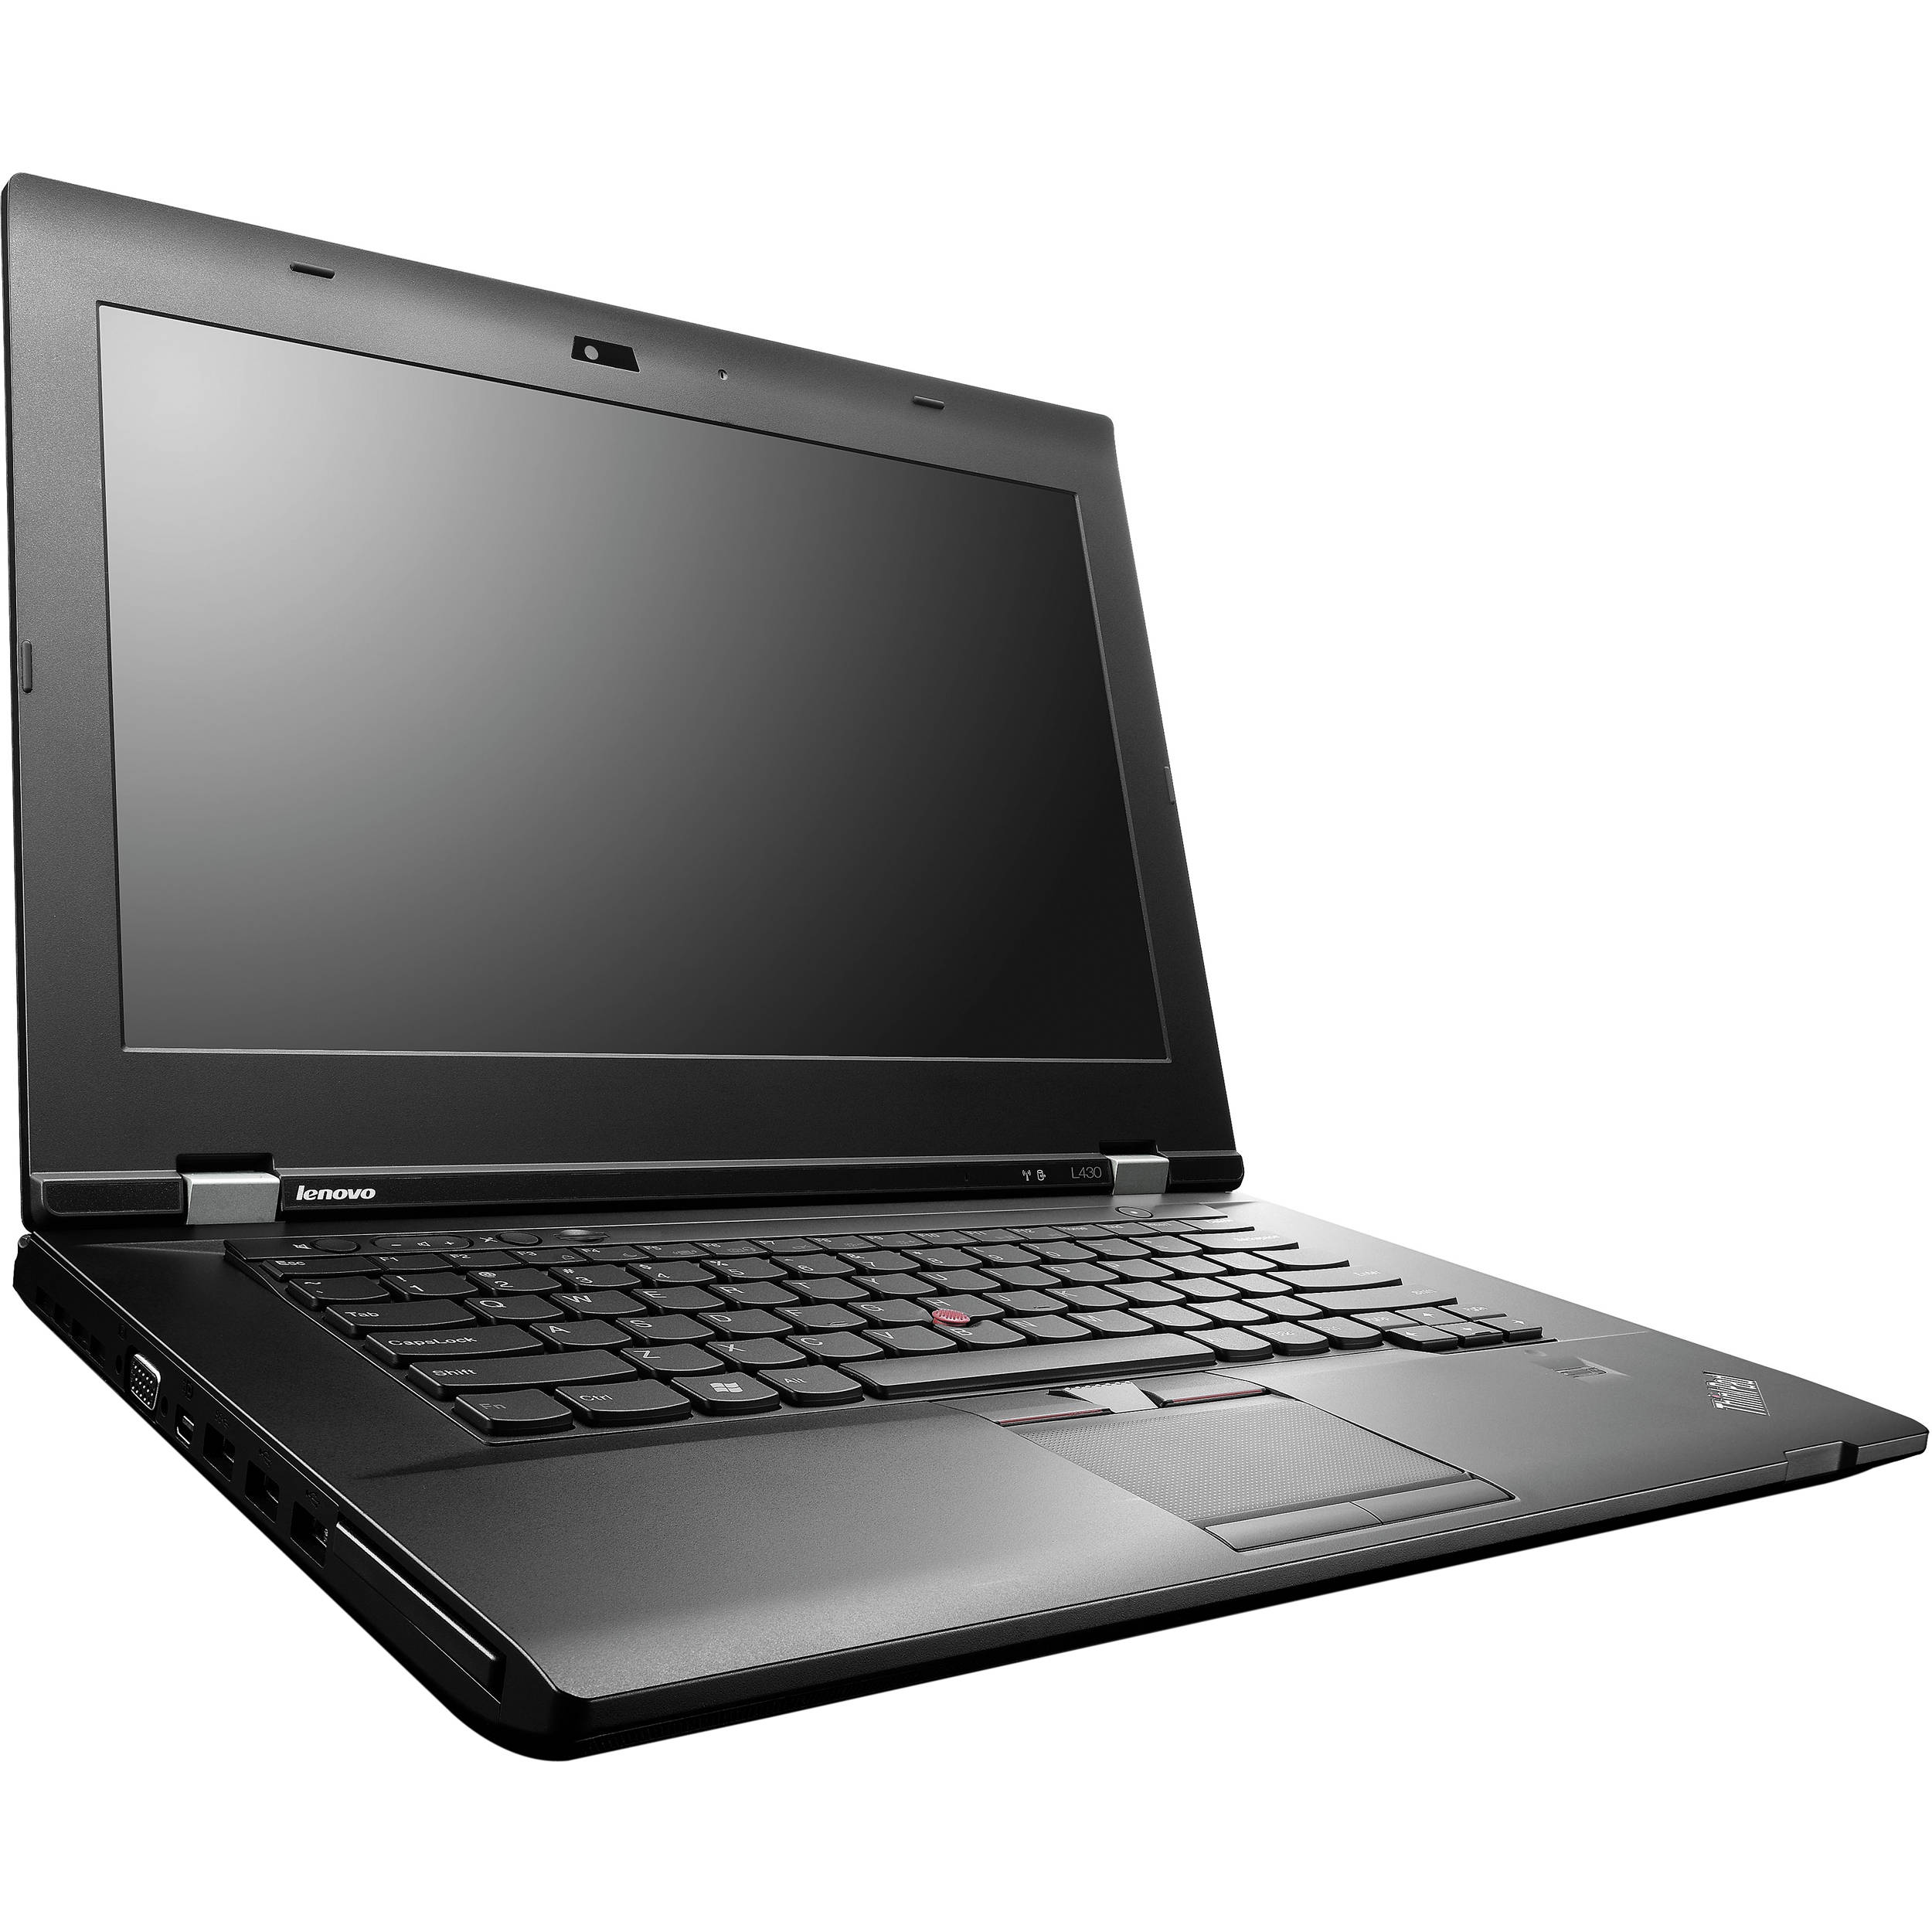 LENOVO THINKPAD L530 WINDOWS 8 DRIVERS DOWNLOAD (2019)